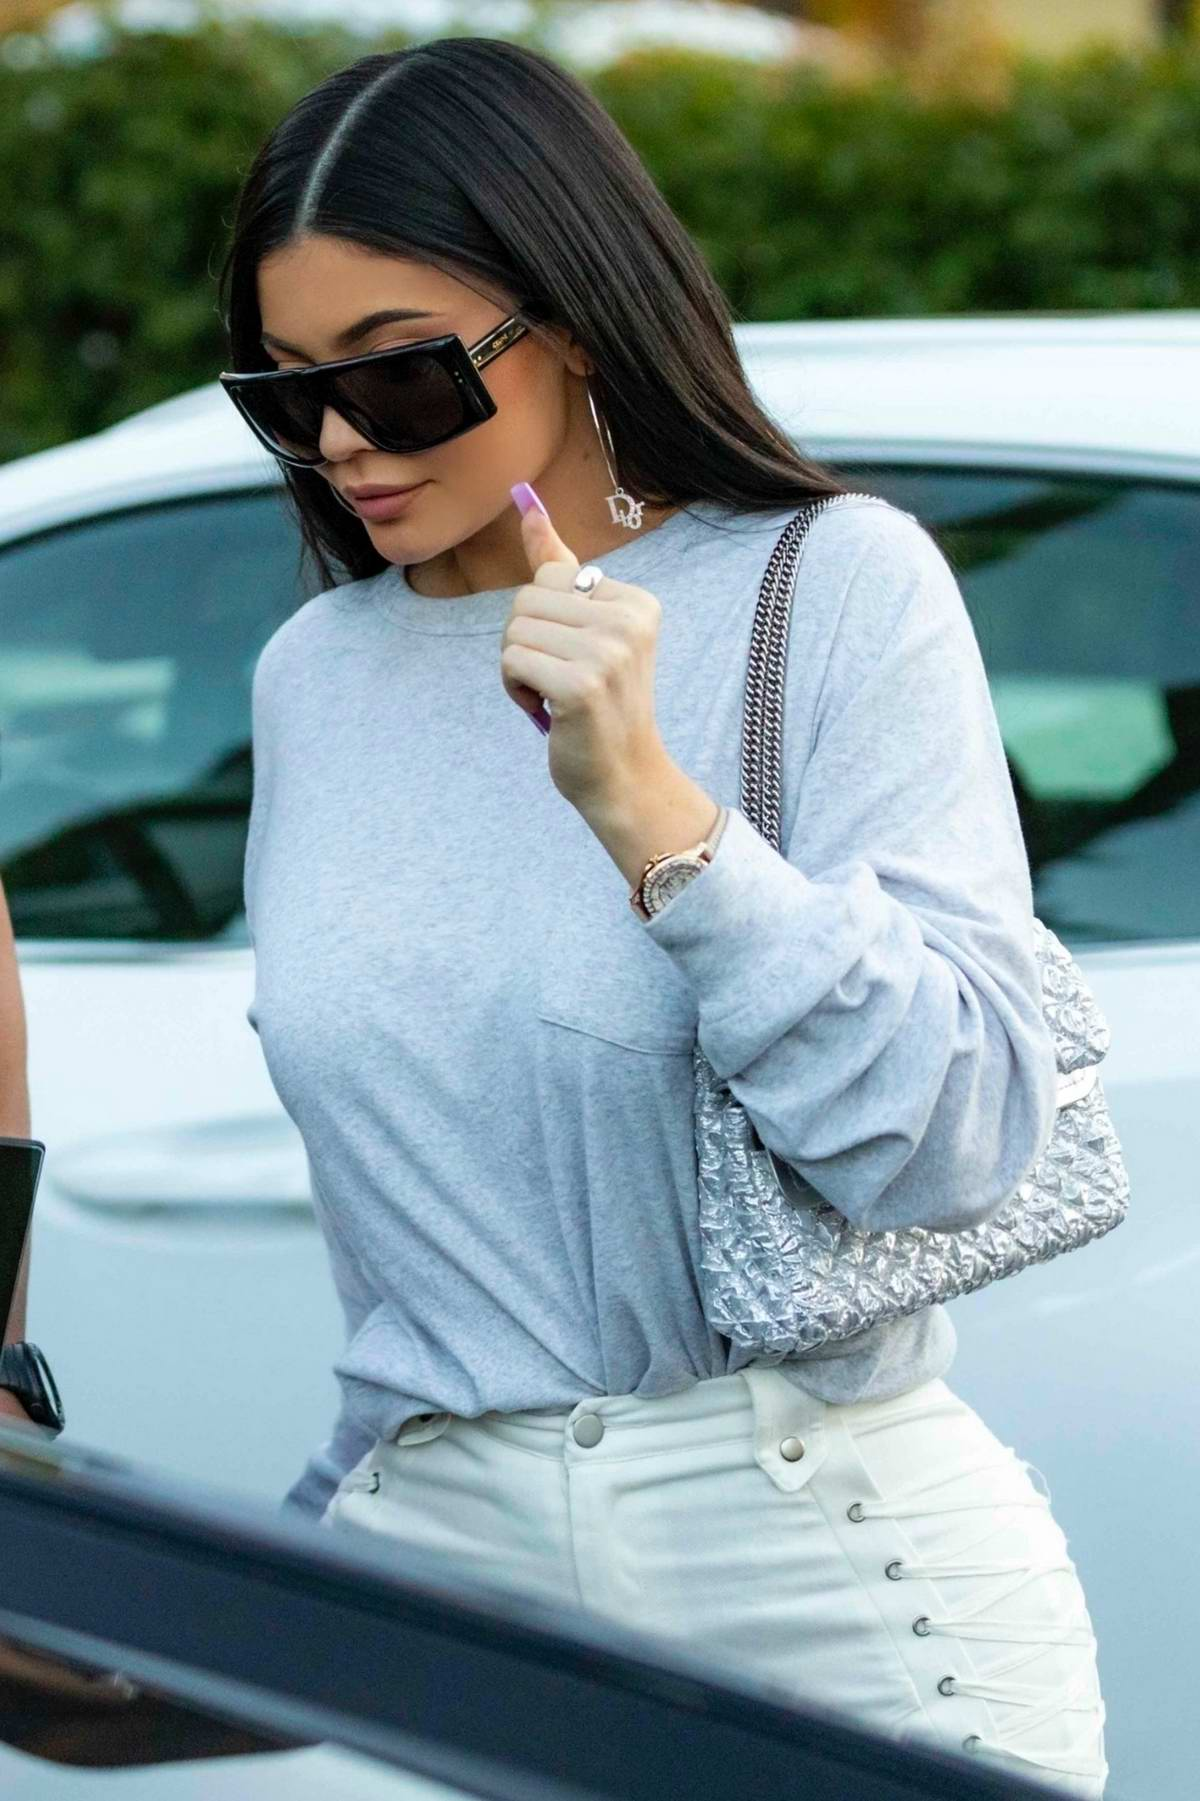 Kylie Jenner spotted grabbing lunch with Corey Gamble at Blue Table in Calabasas, California